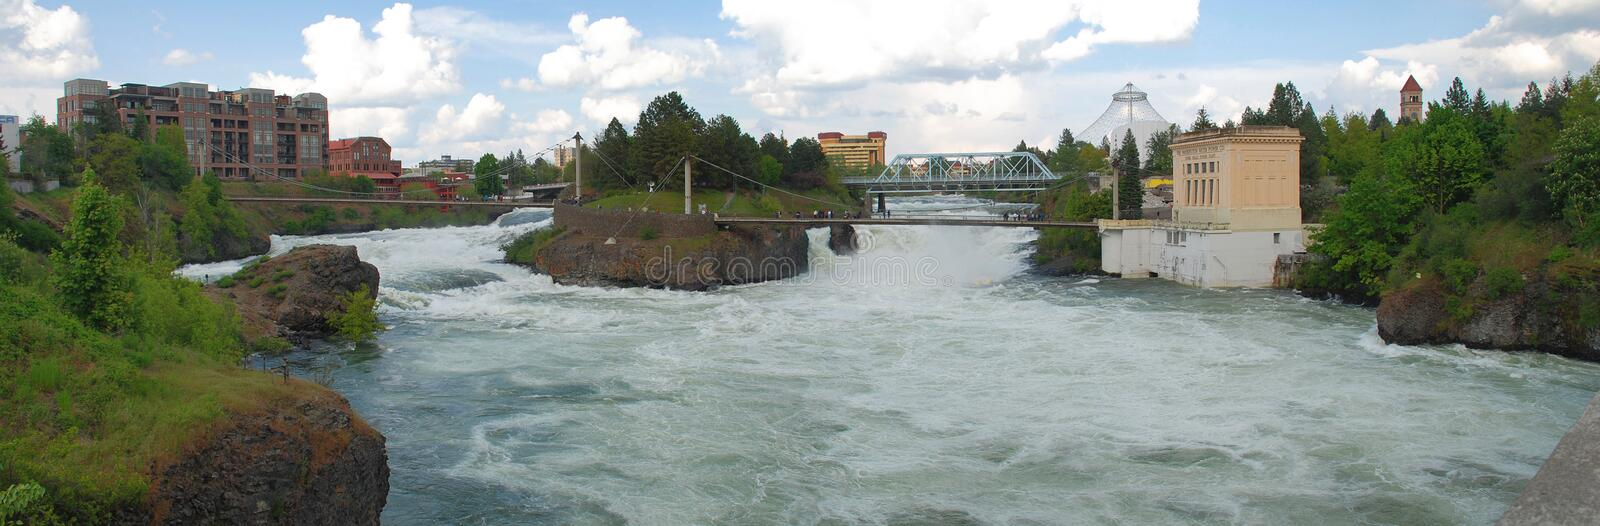 Spokane Falls - Spokane, Washington. Upper Falls of the Spokane River flowing through Downtown Spokane, Washington. It is one of just a few urban waterfalls in stock image